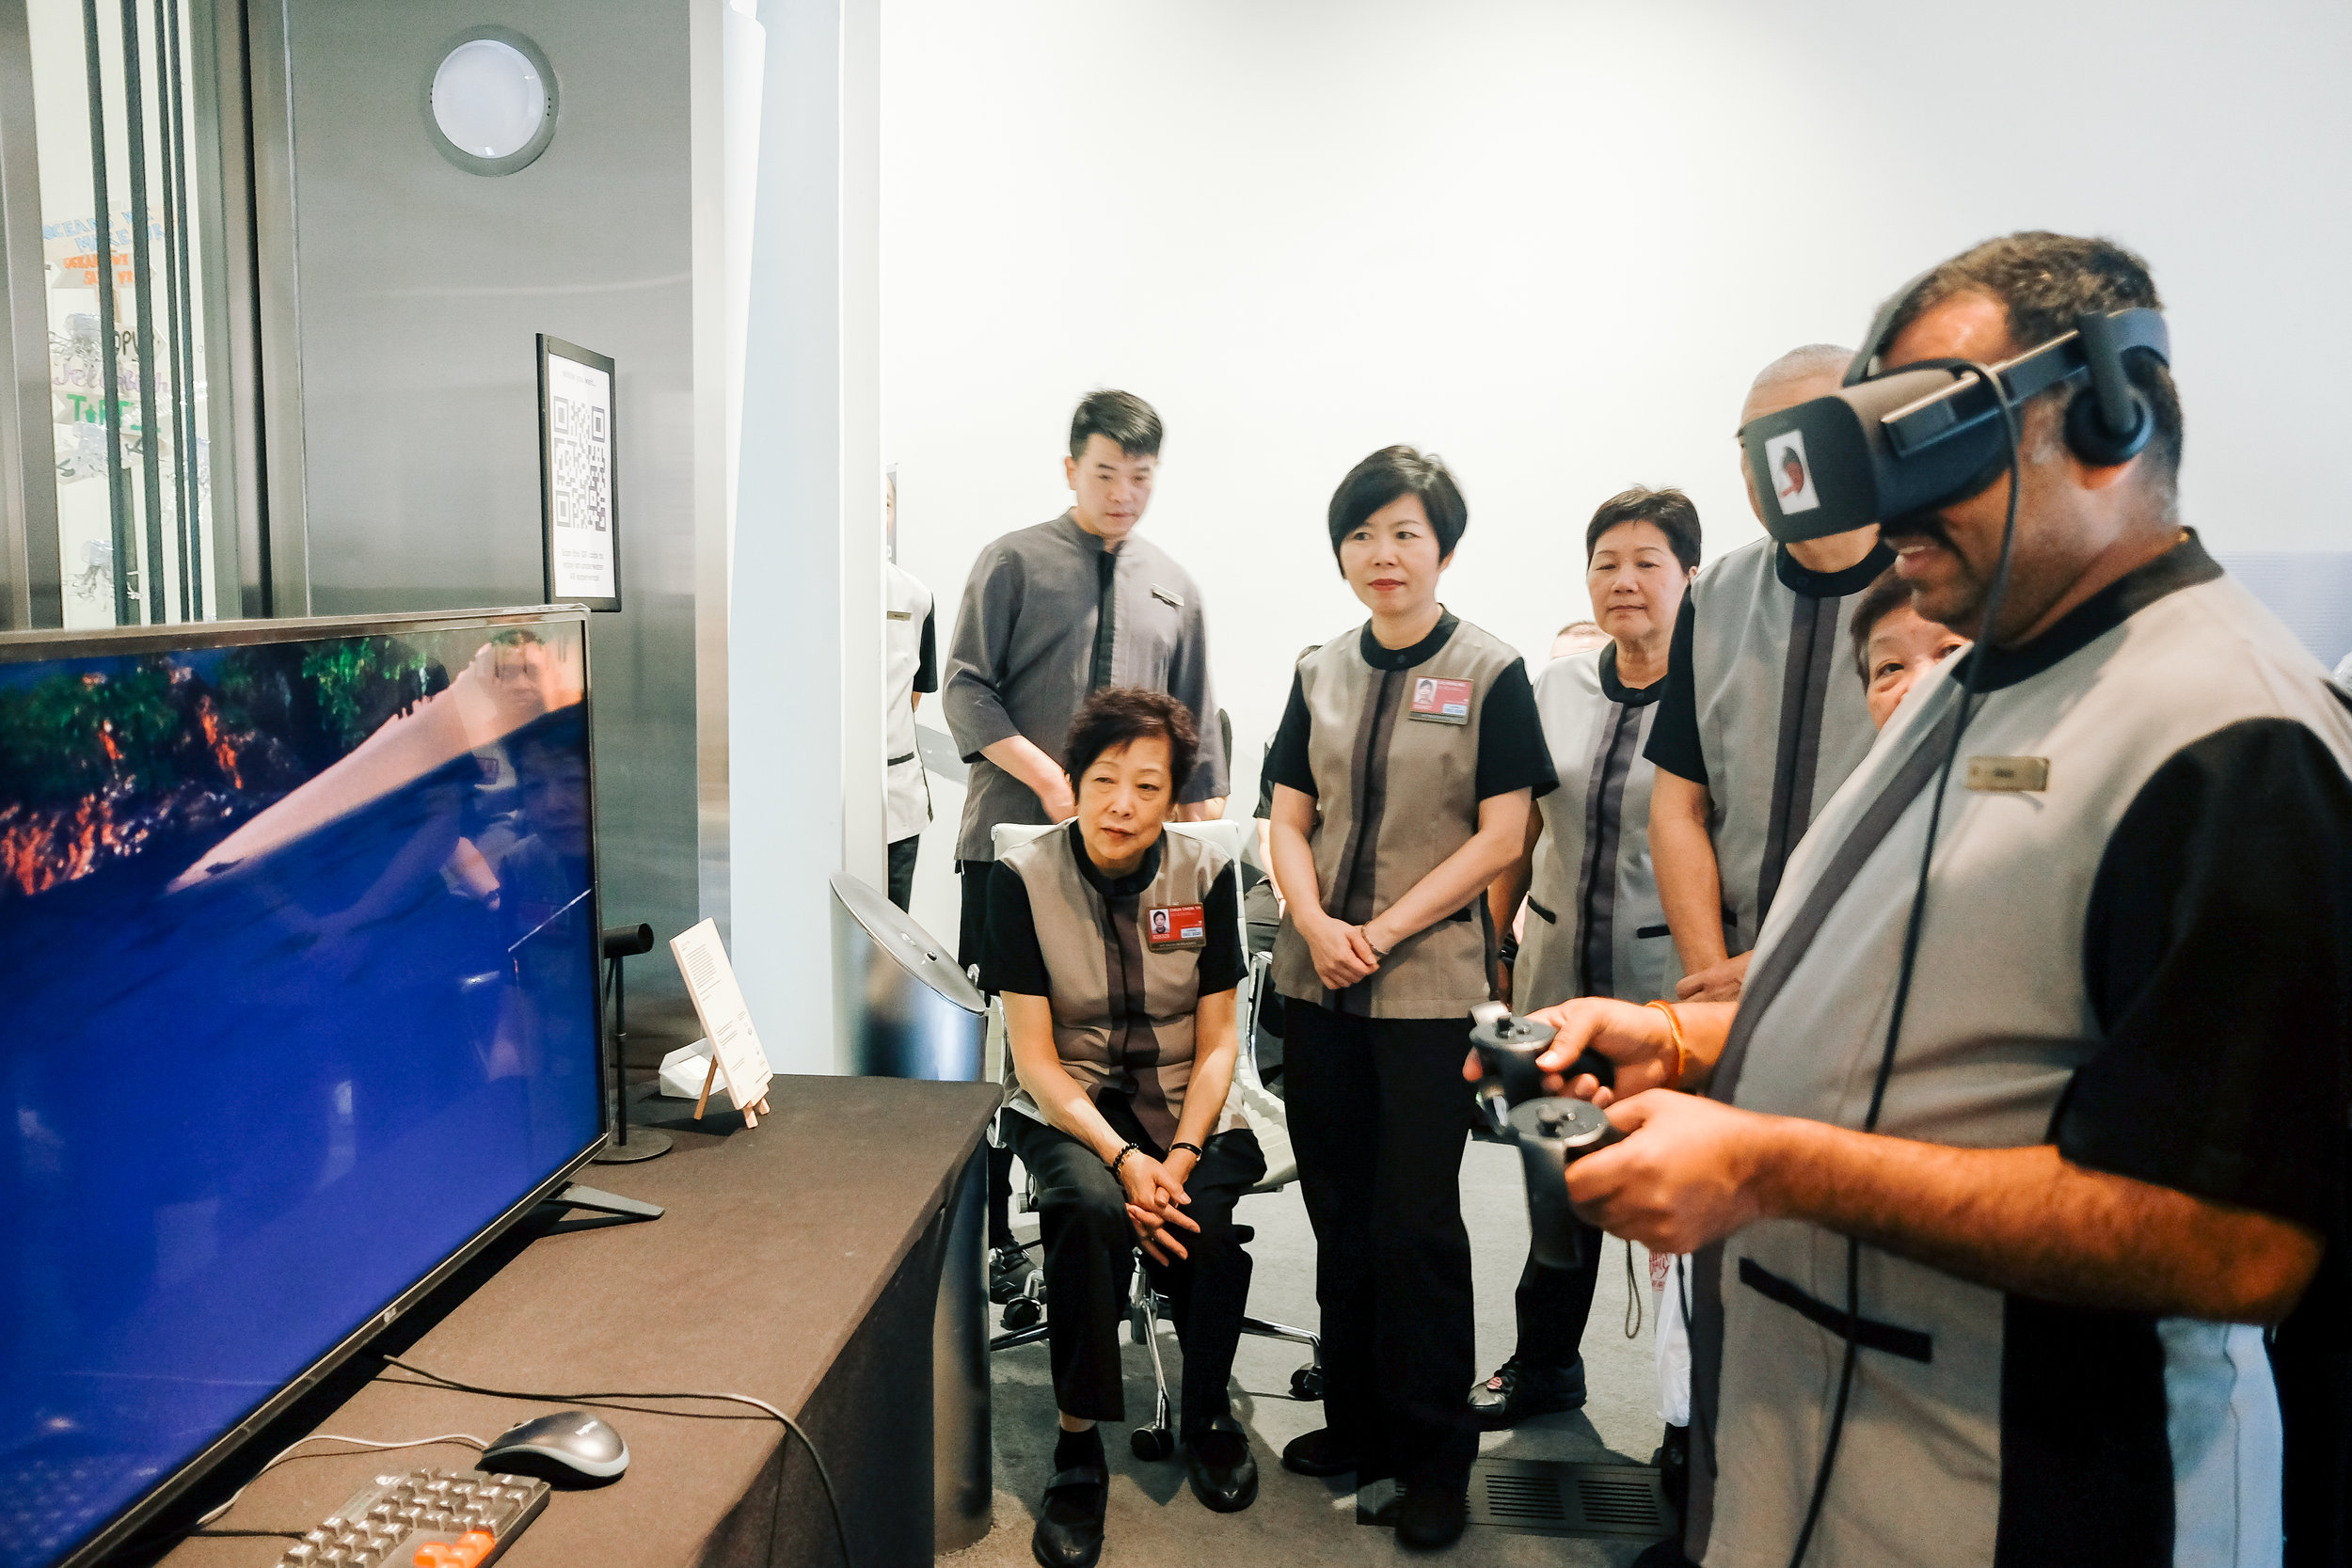 18 Mar - New Straits Times on education the public on AR, VR and pollution. - Read more: https://www.nst.com.my/lifestyle/bots/2019/03/470373/educating-public-pollution-ar-and-vr